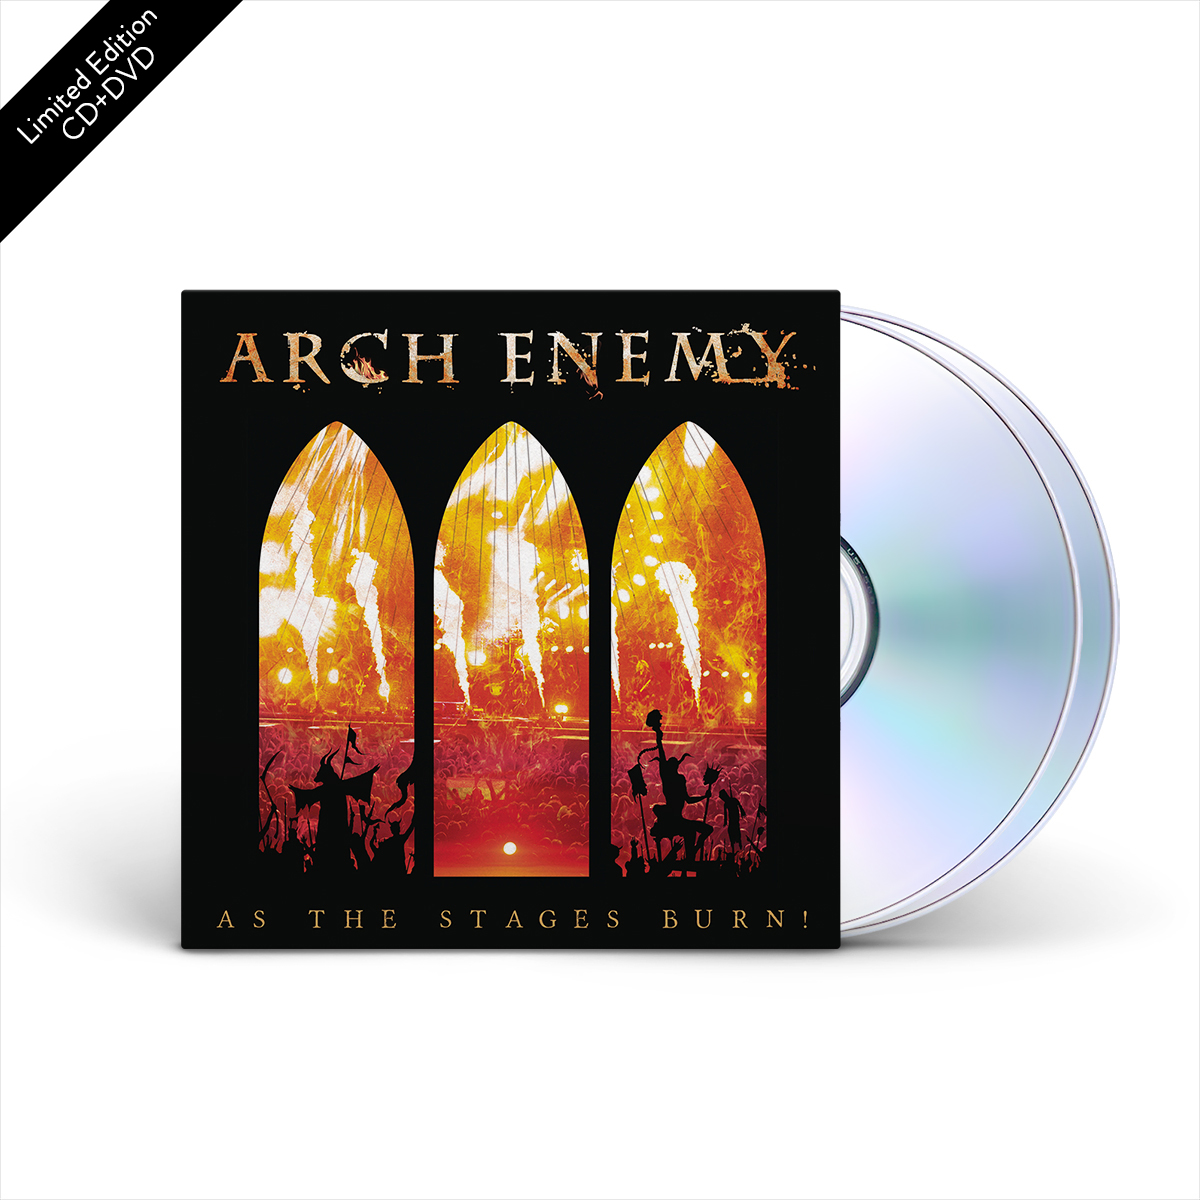 Arch Enemy - As The Stages Burn! Limited Edition CD+DVD